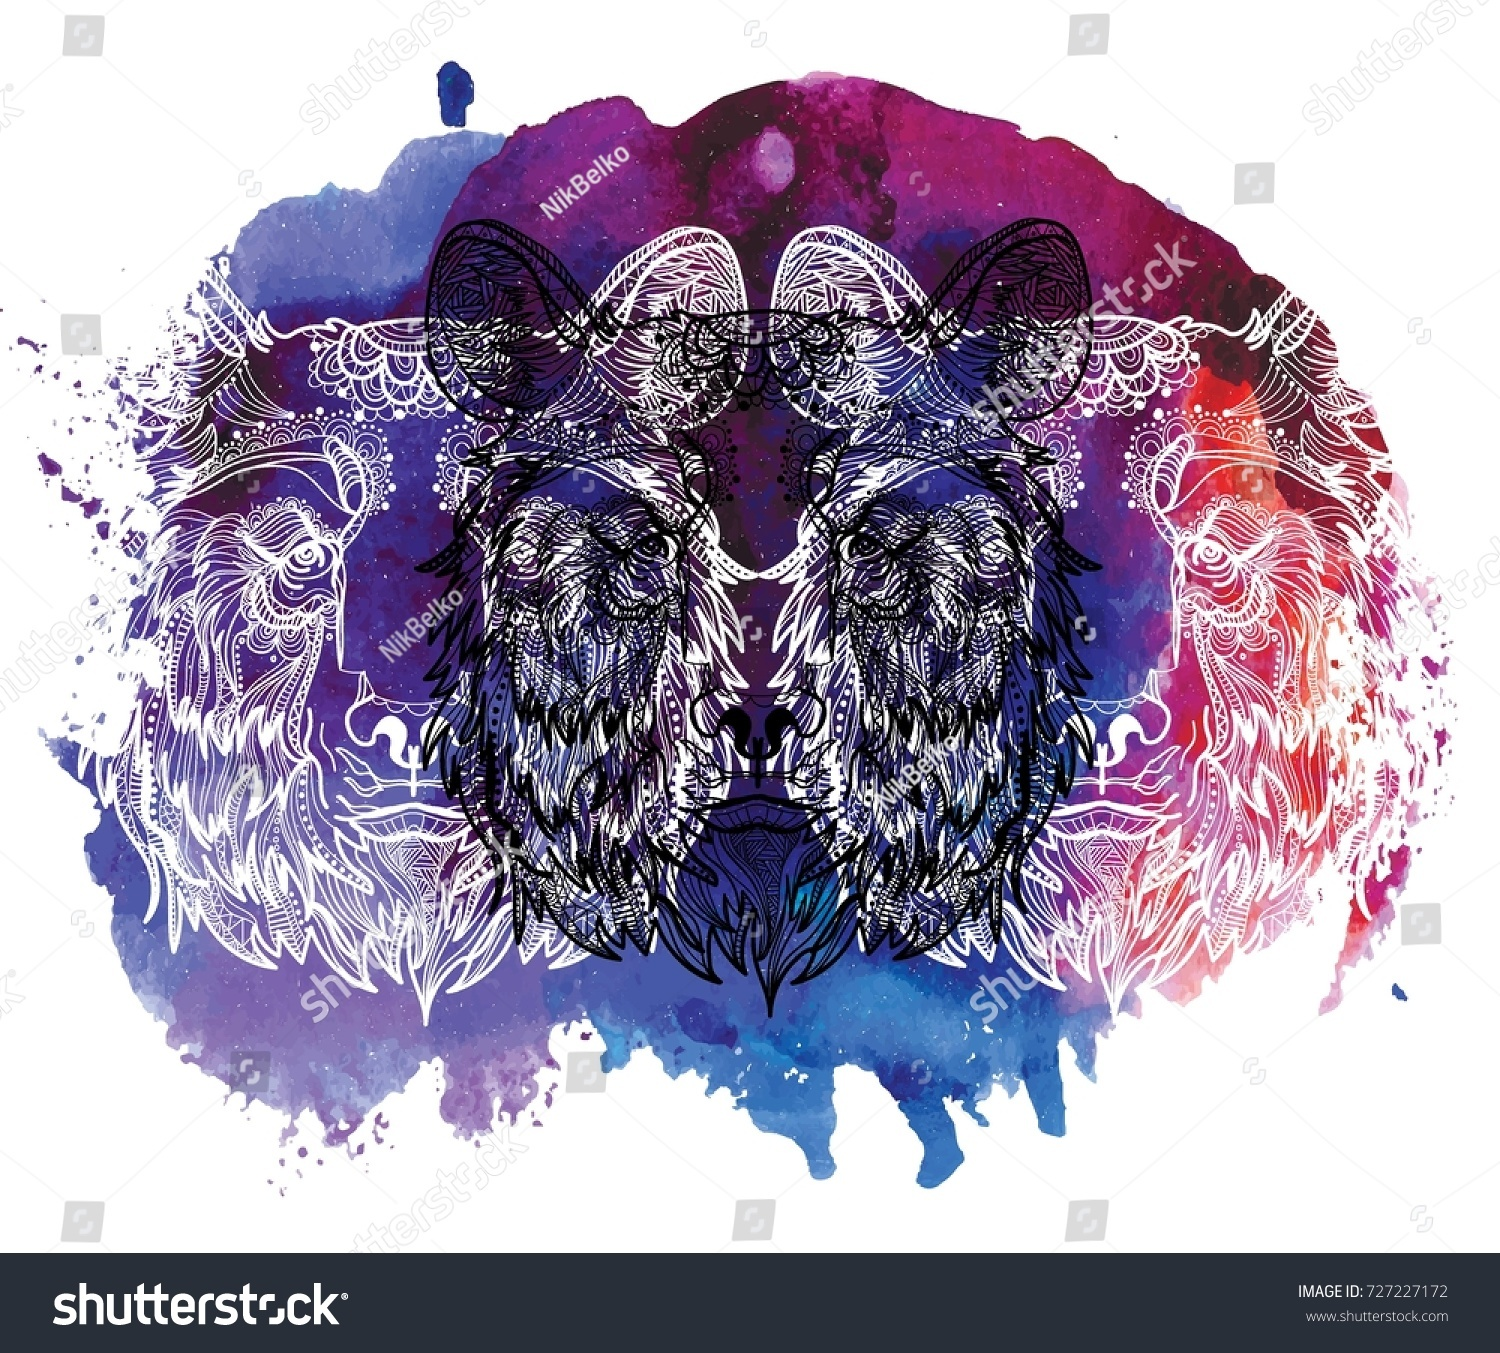 The Head Of A Bear Meditation Coloring Mandala Fluffy Face With